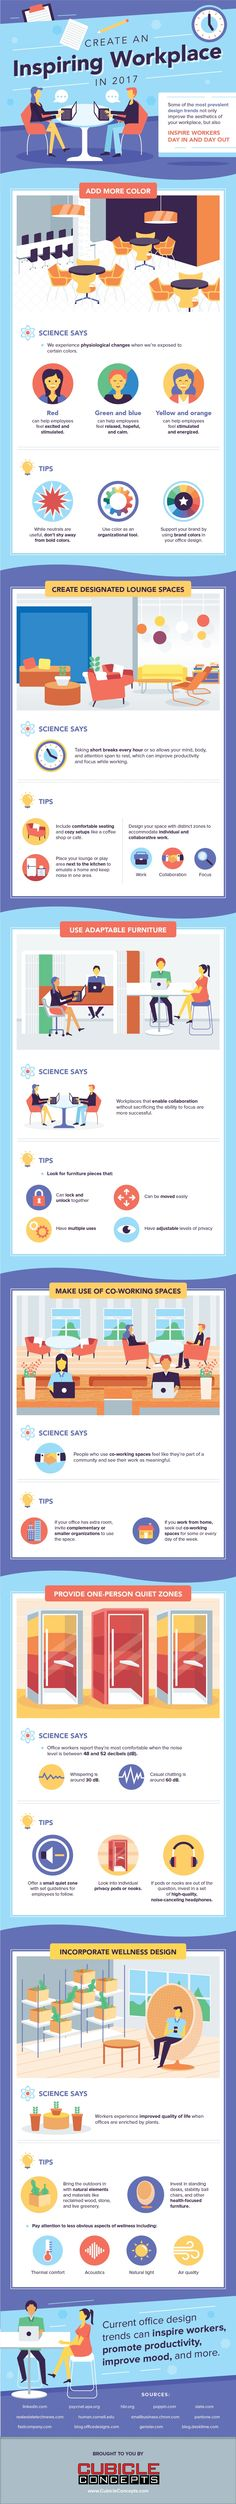 Create an Inspiring Workplace in 2017 #Infographic #Business #Workplace